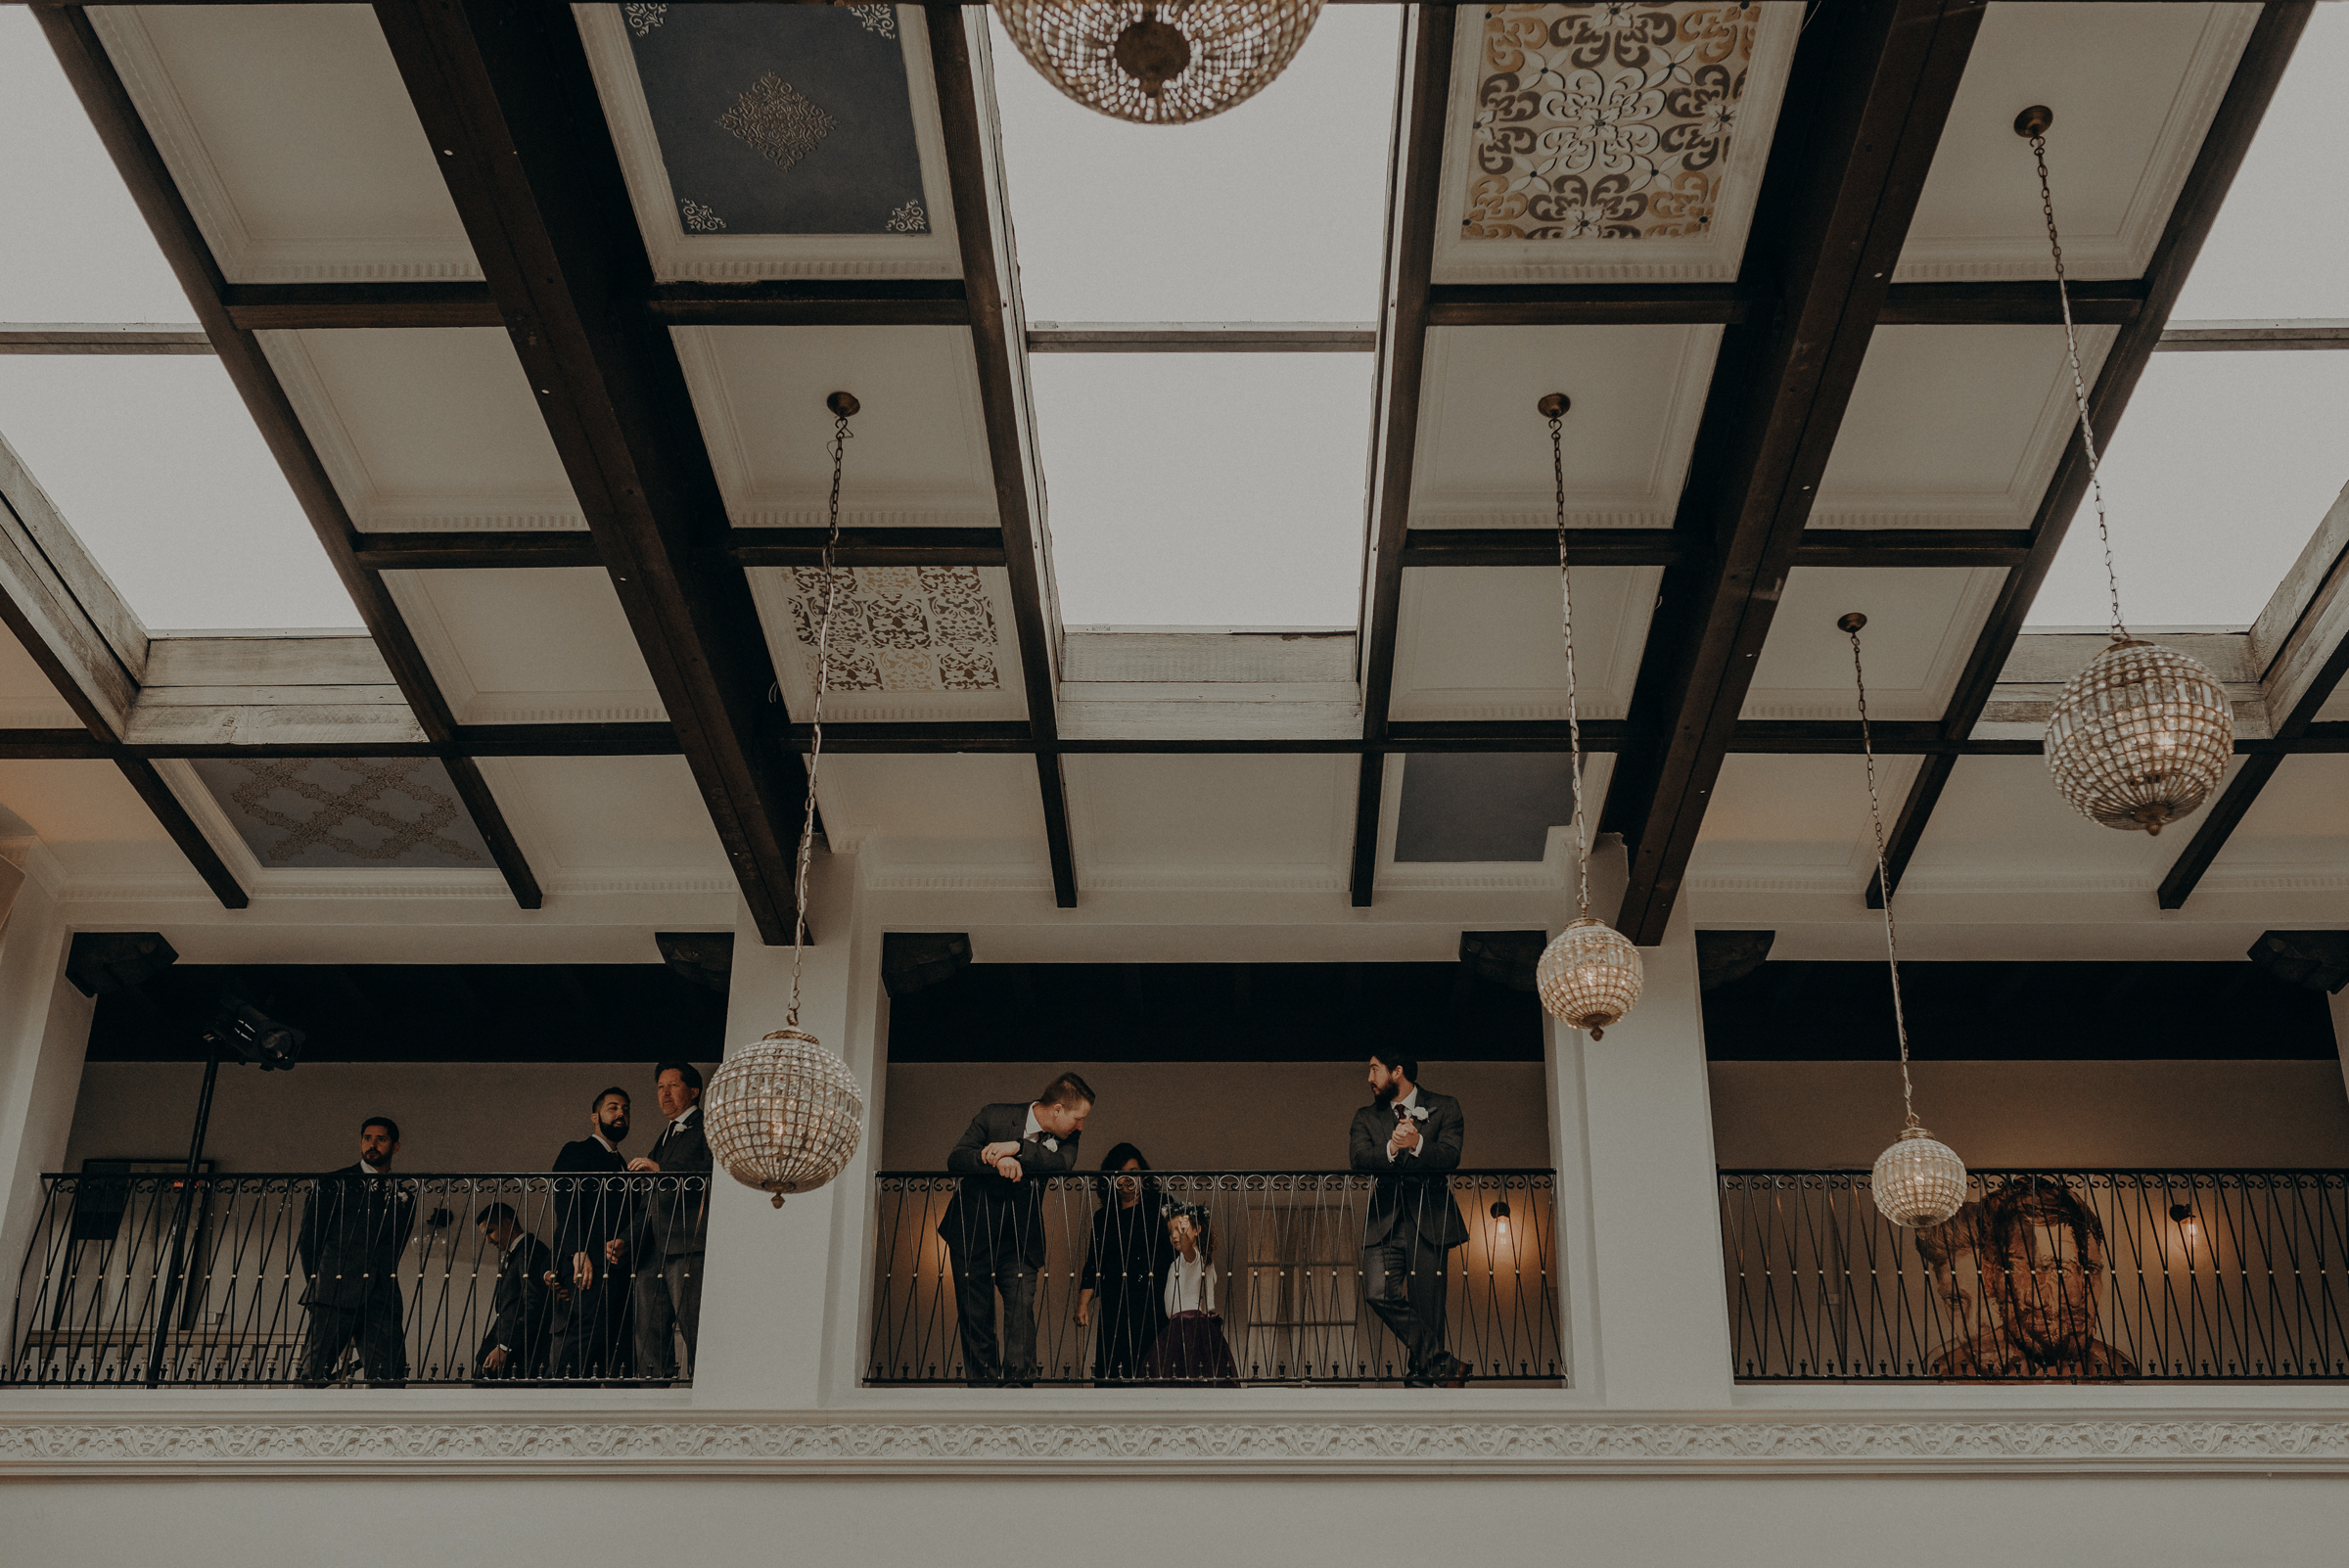 Los Angeles Wedding Photographer - IsaiahAndTaylor.com - The Ebell of Long Beach Wedding-091.jpg